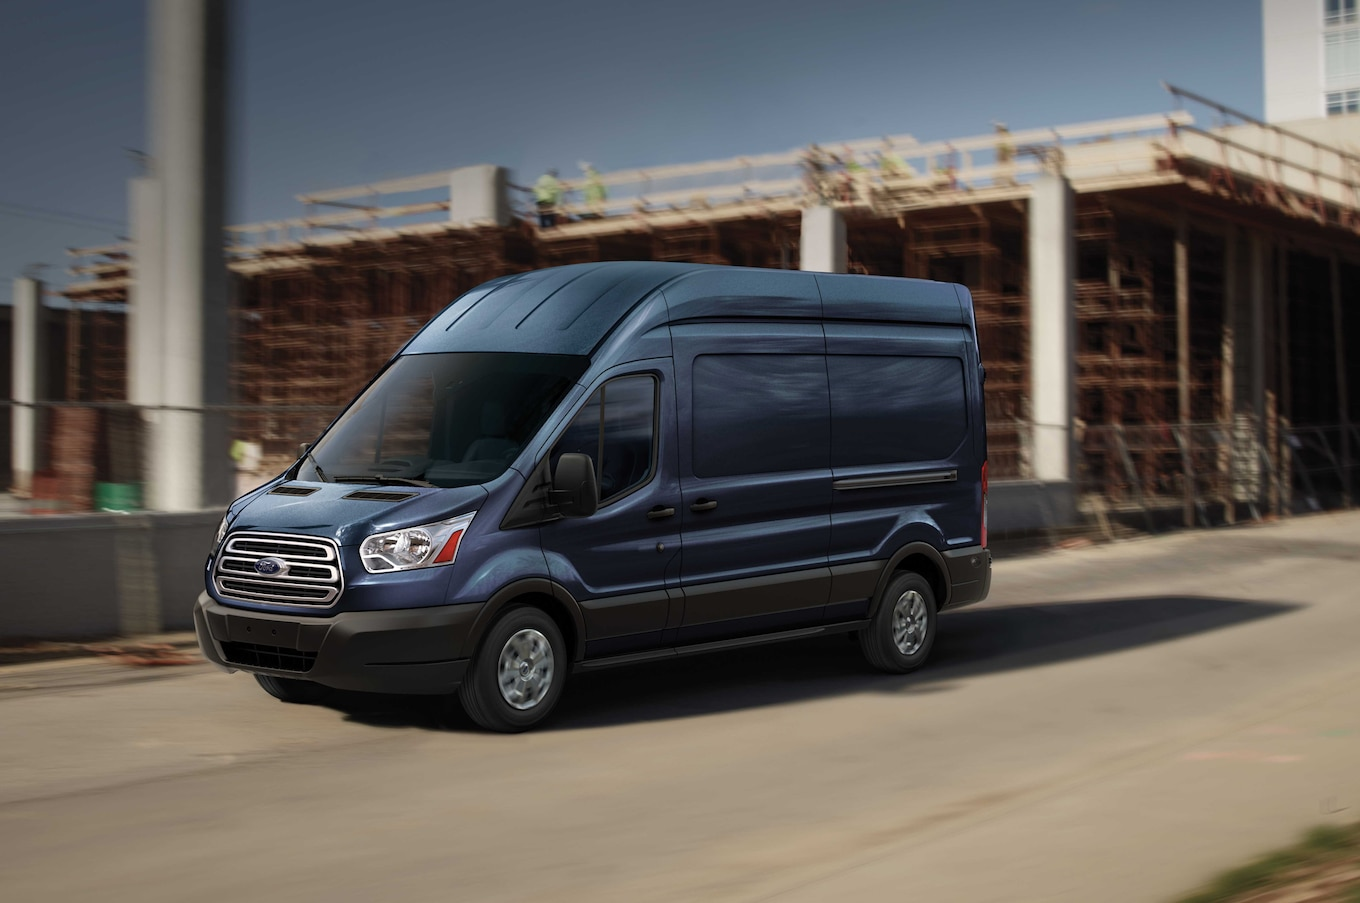 2016 ford transit reviews and rating motortrend2016 ford transit gets sync 3 transit connect also [ 300:199 x 1360 Pixel ]